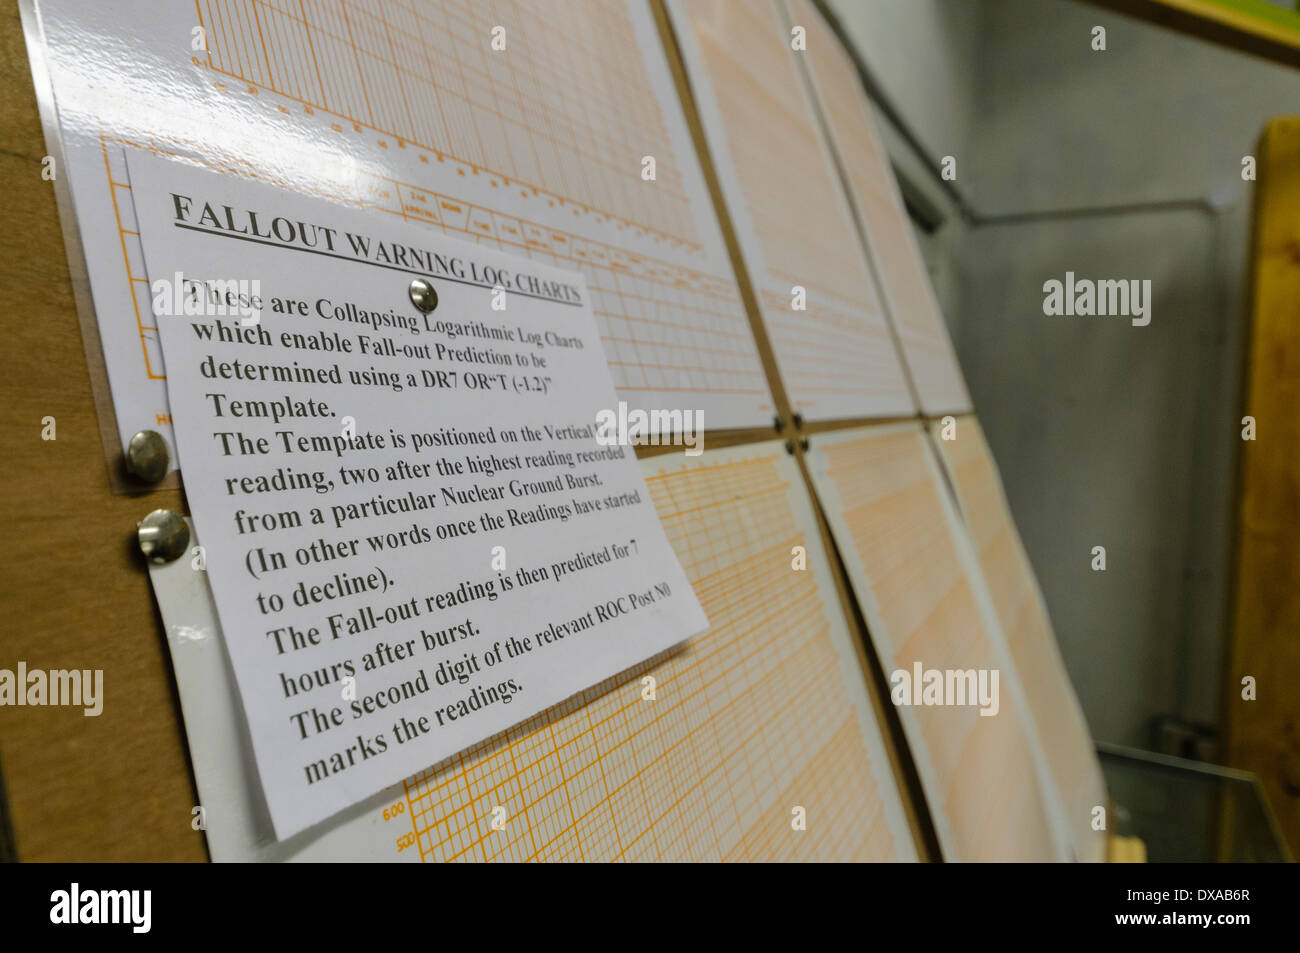 Nuclear bomb attack fallout warning log charts - Stock Image